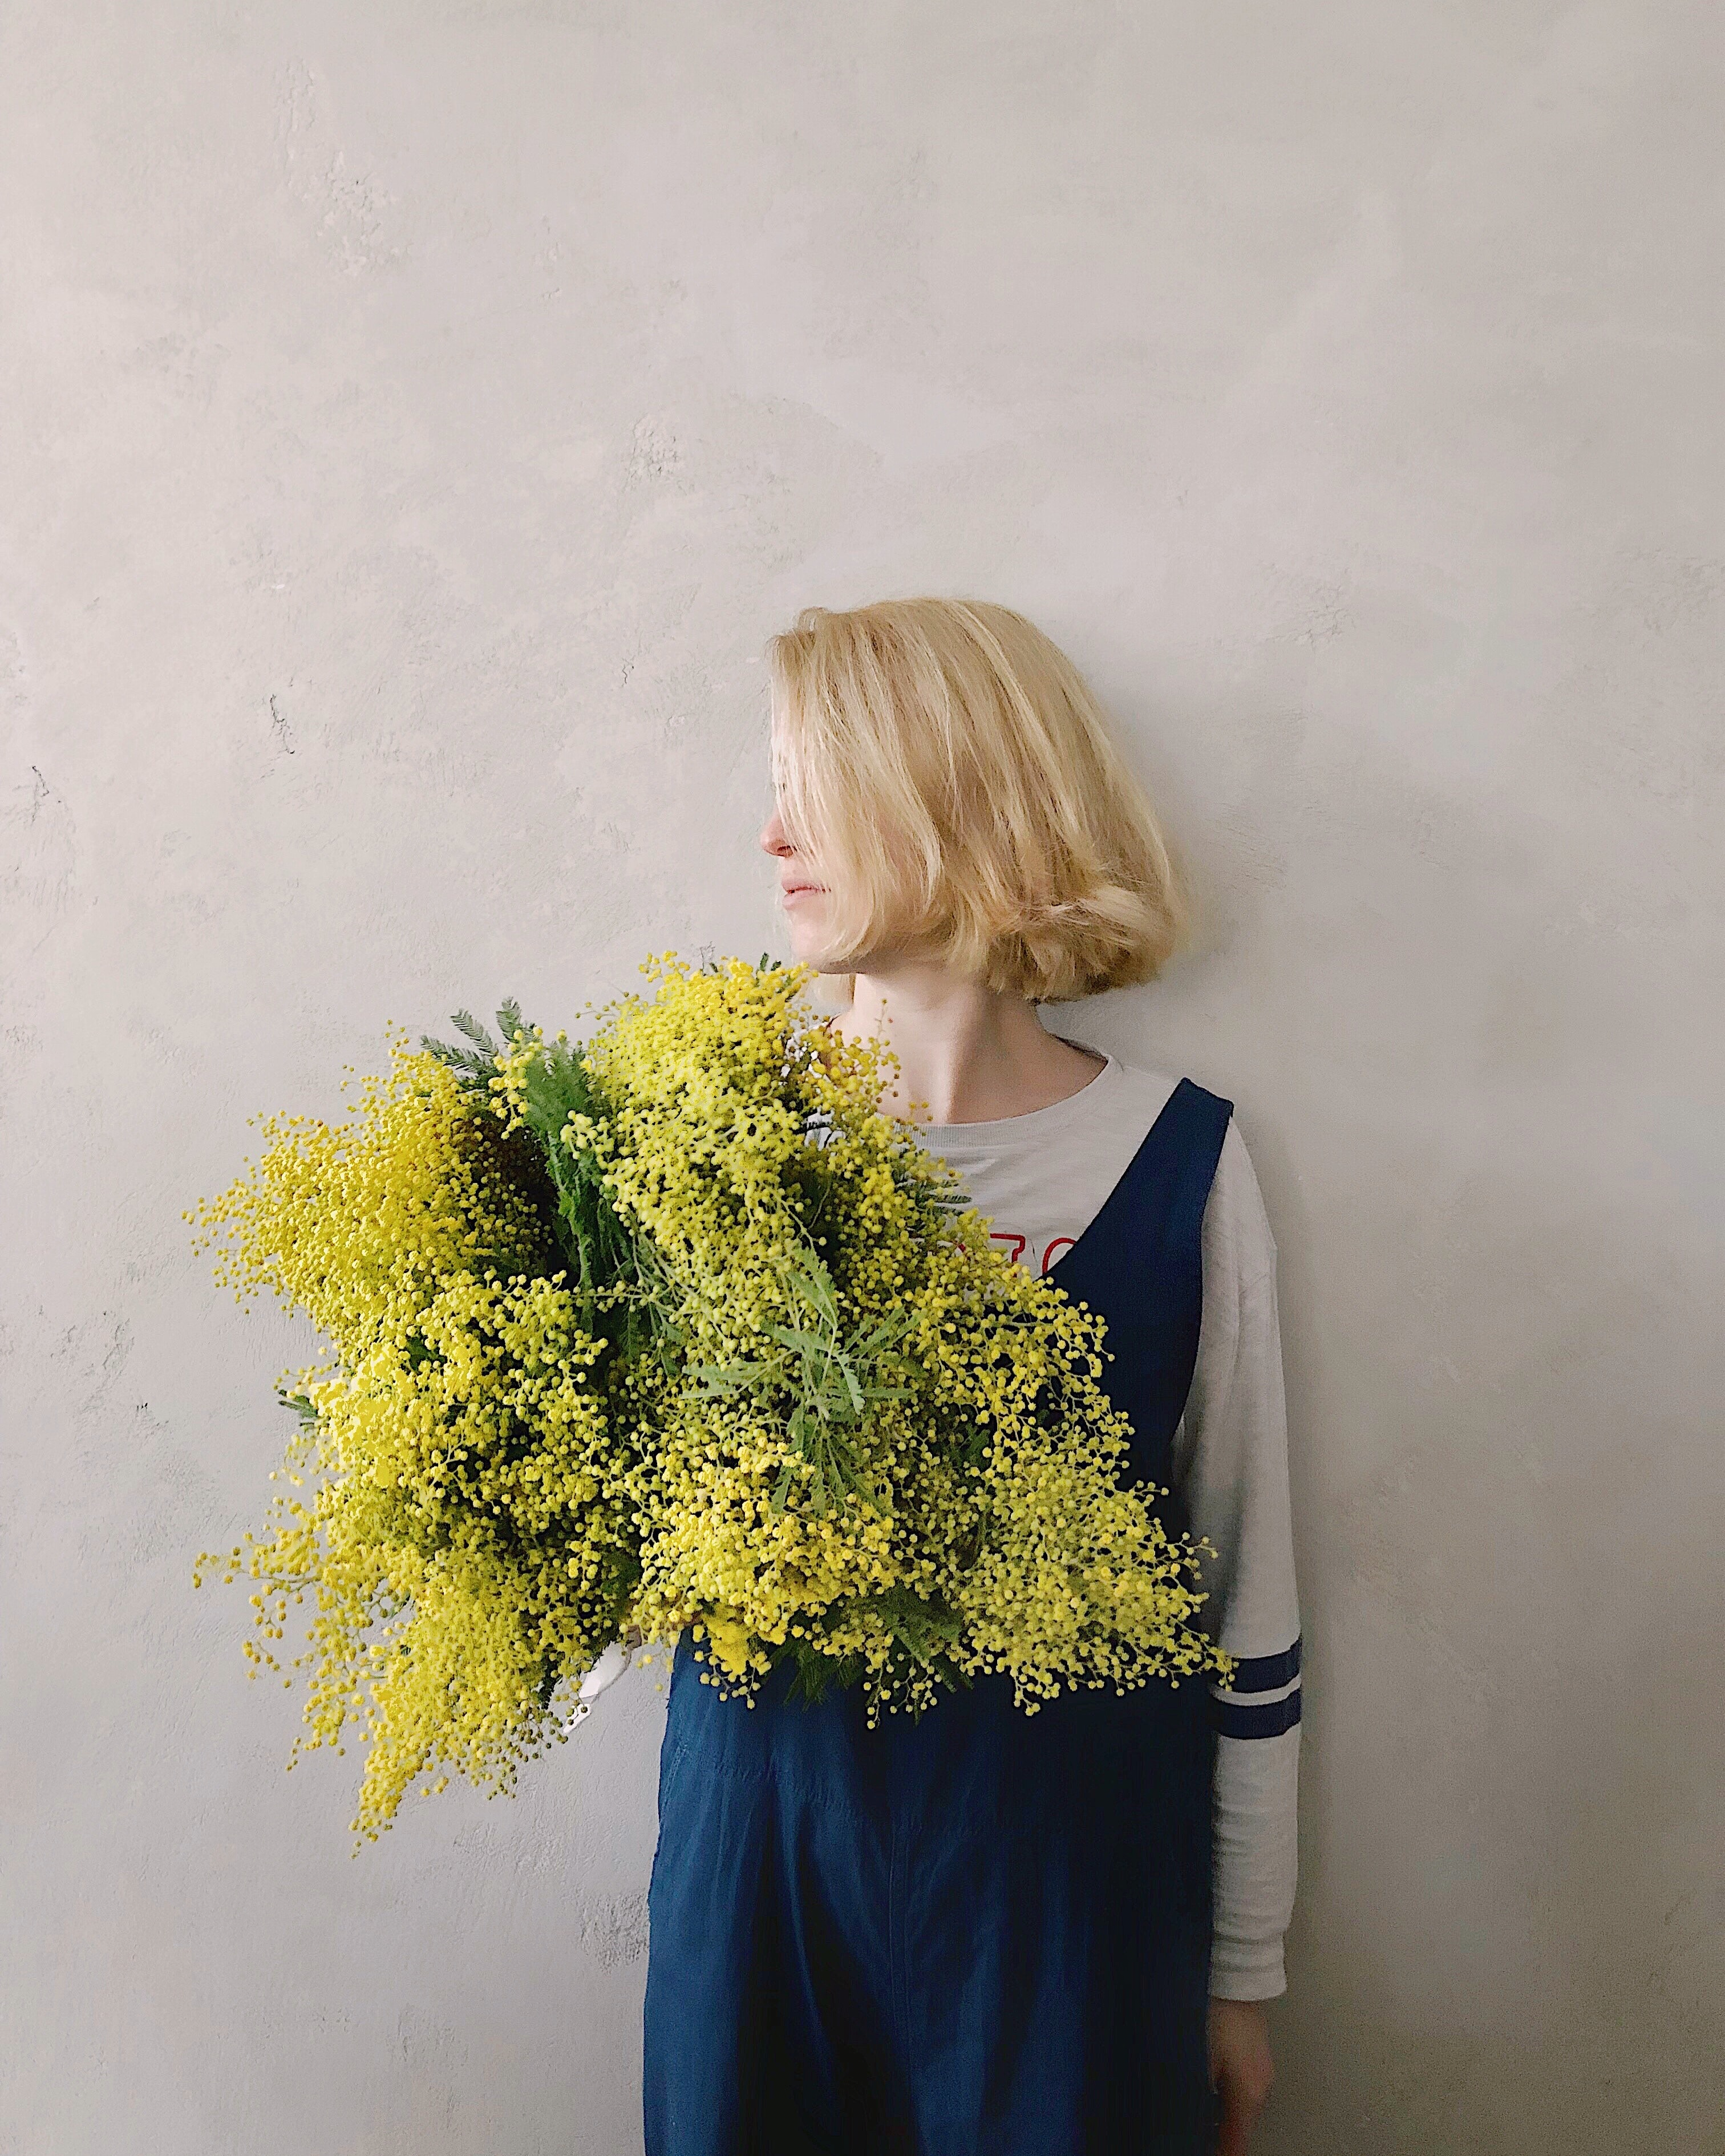 Woman wearing blue v-neck sleeveless top while holding yellow petaled flower photo